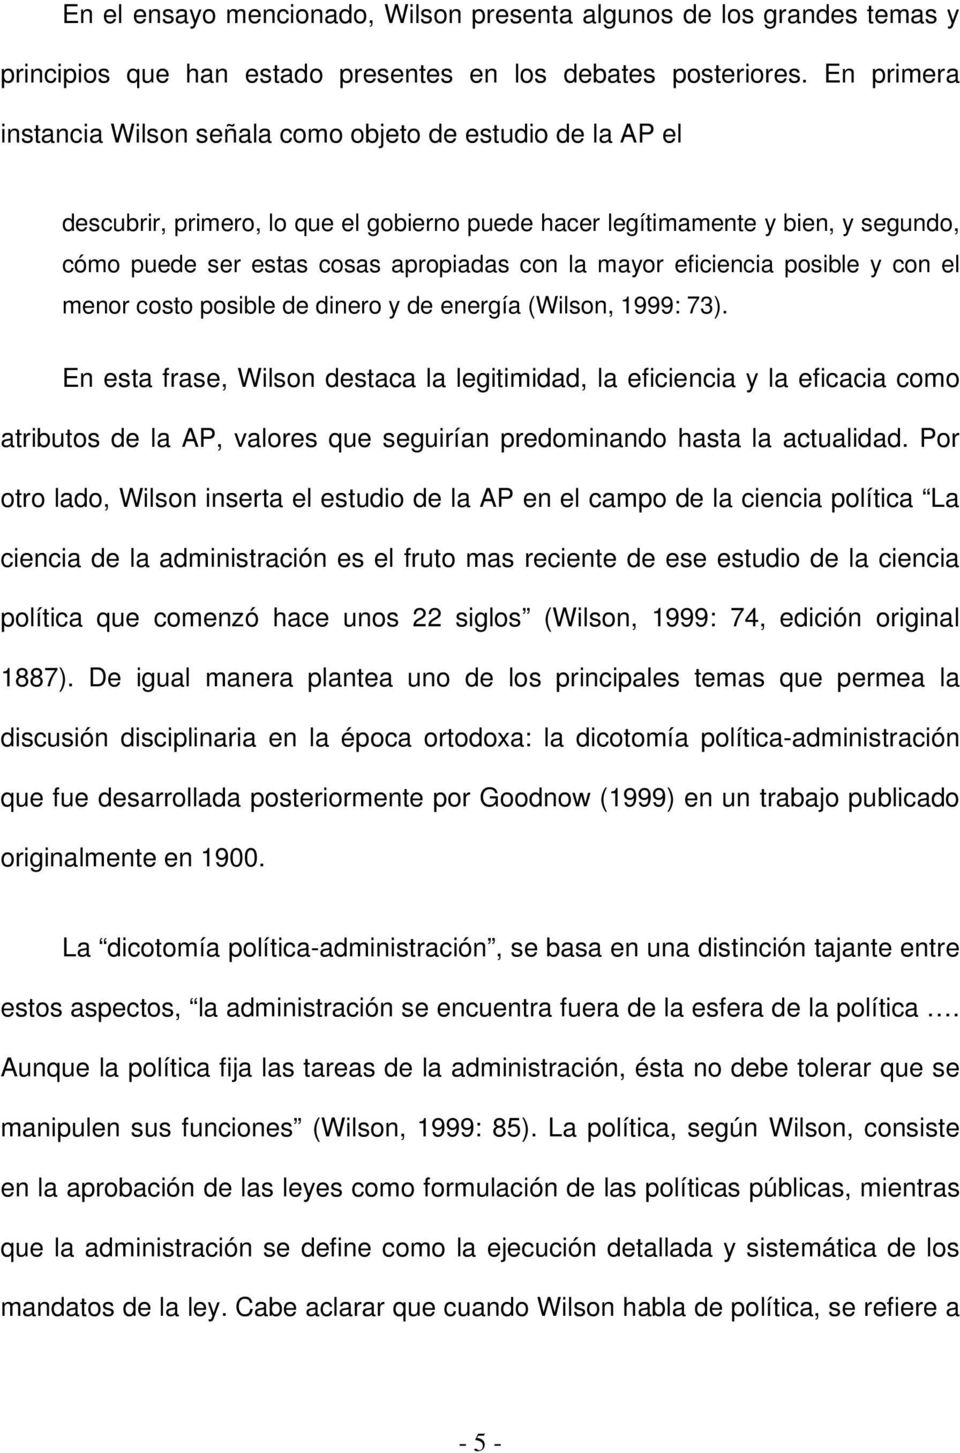 mayor eficiencia posible y con el menor costo posible de dinero y de energía (Wilson, 1999: 73).